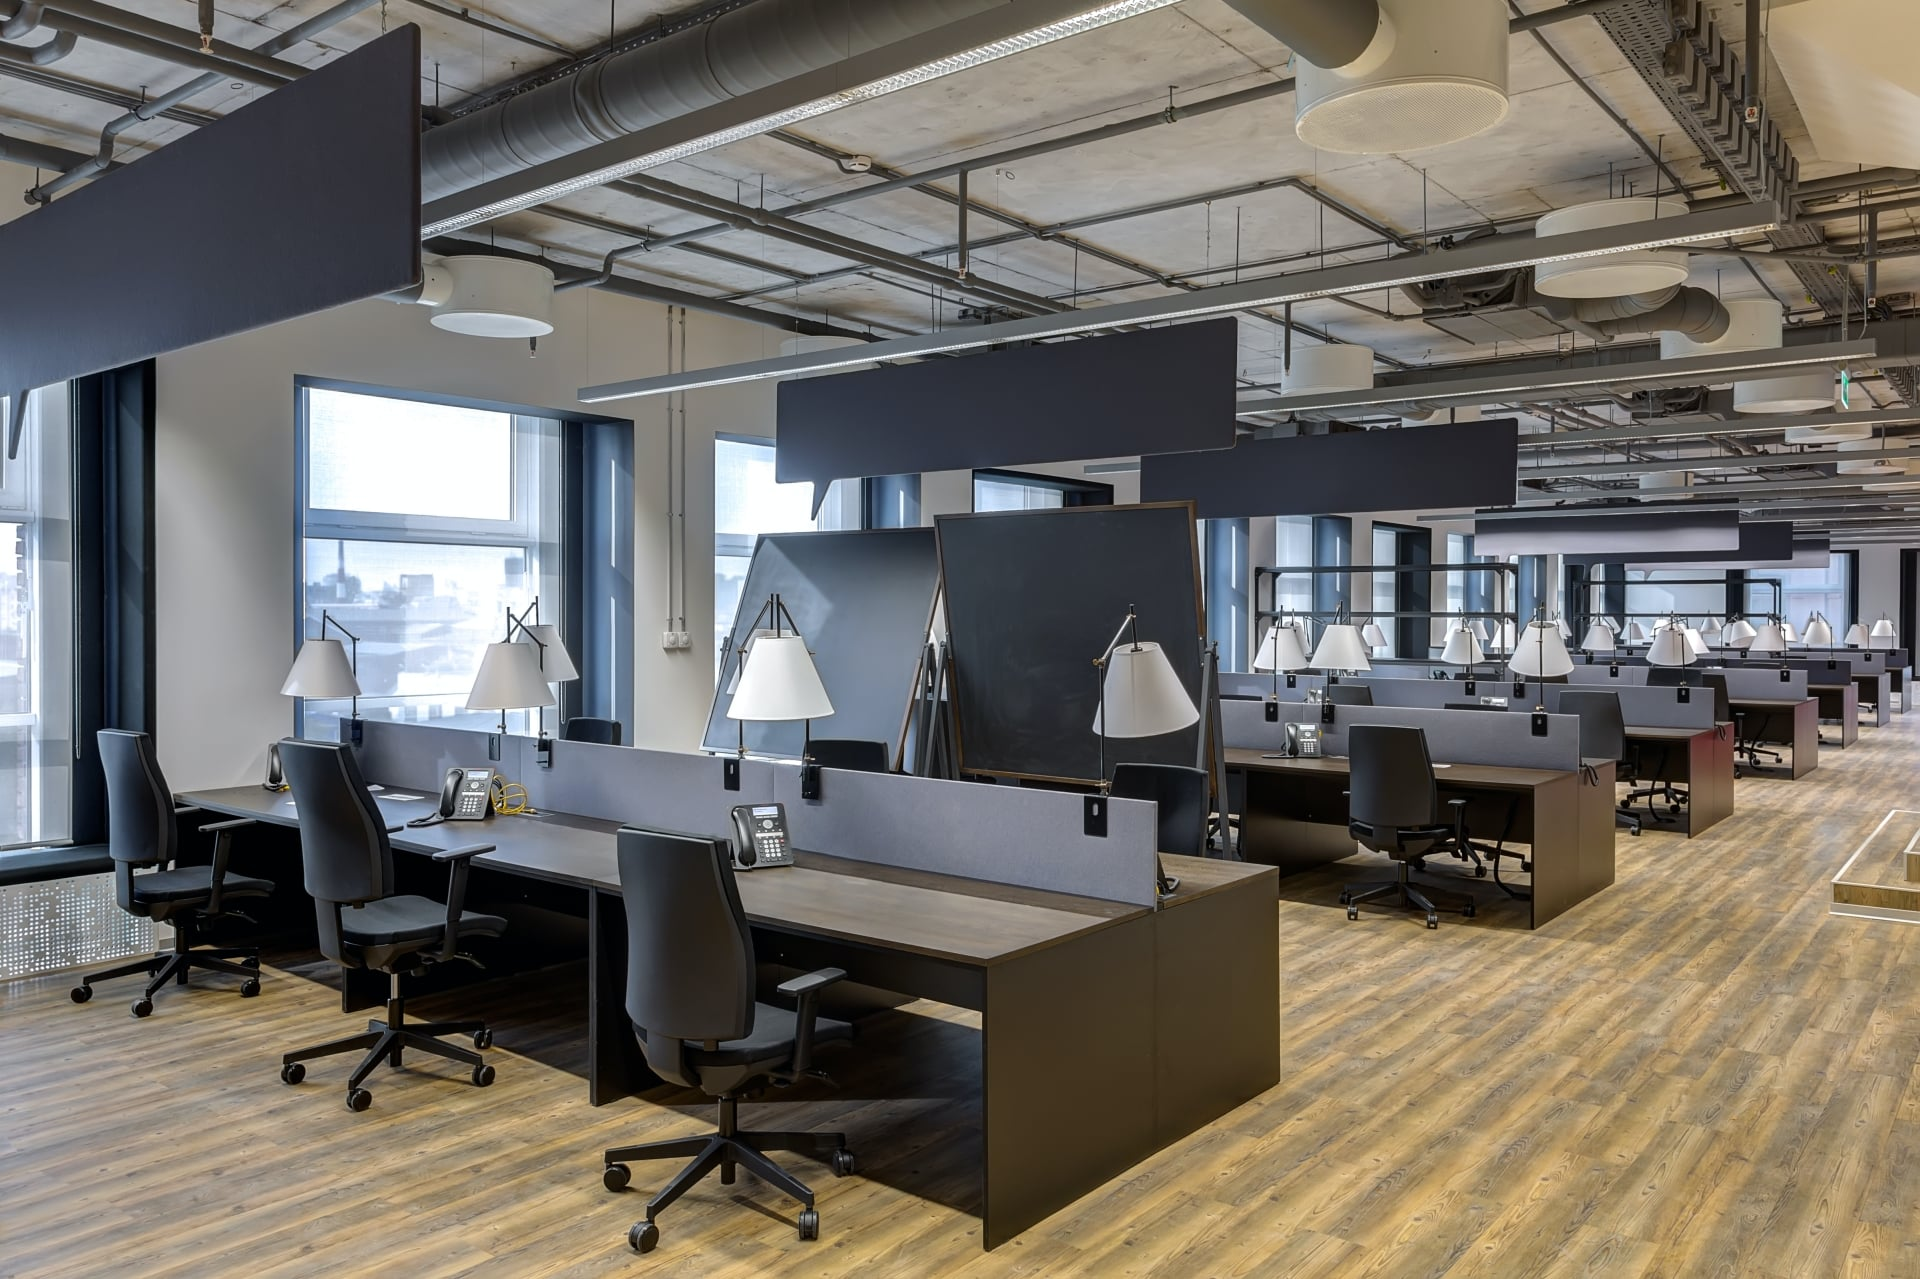 black office chairs and cubicles